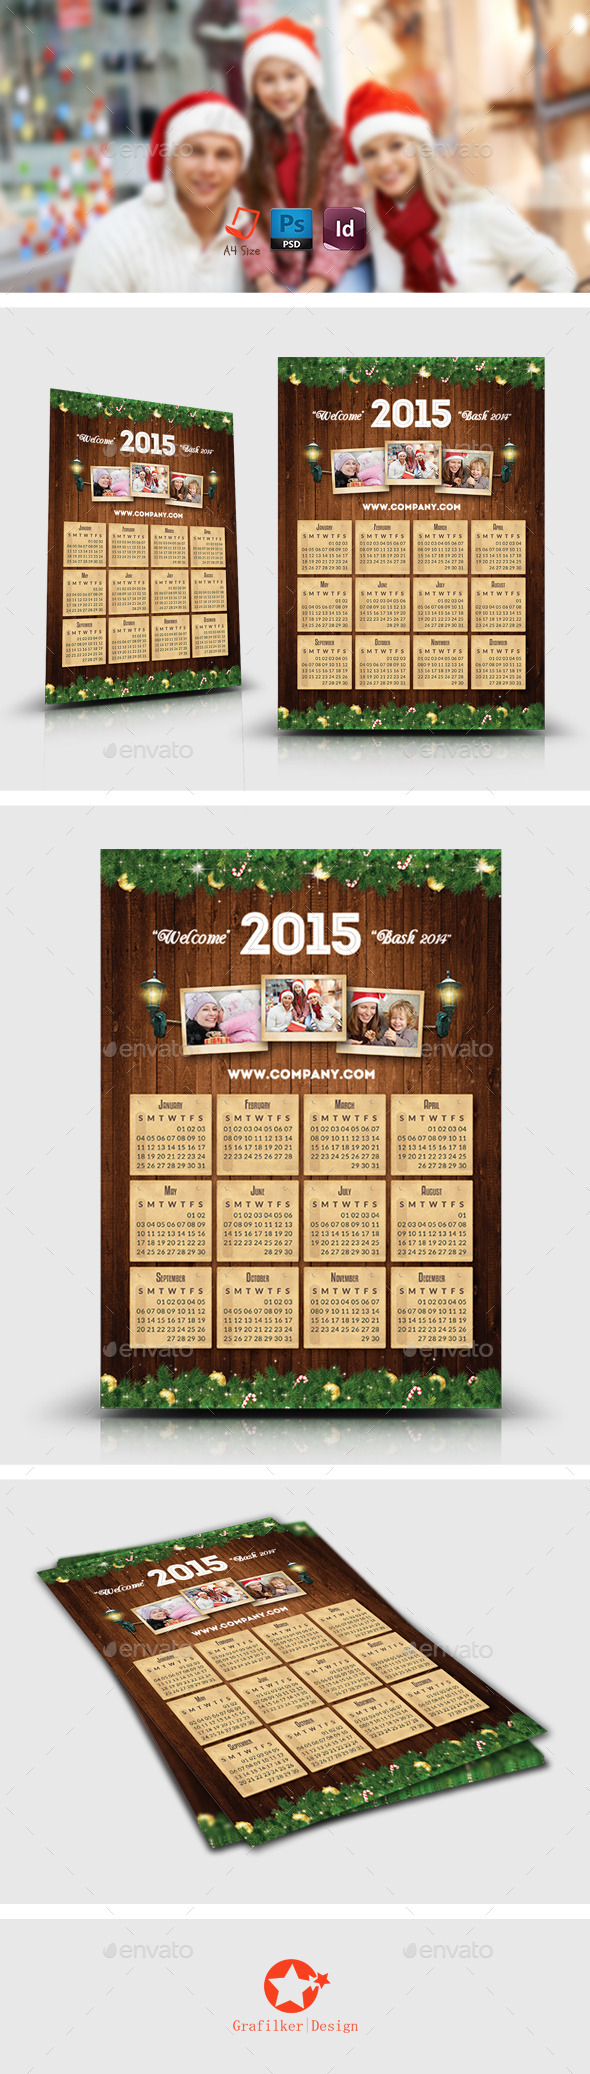 GraphicRiver Christmas Calendar Templates 9197632